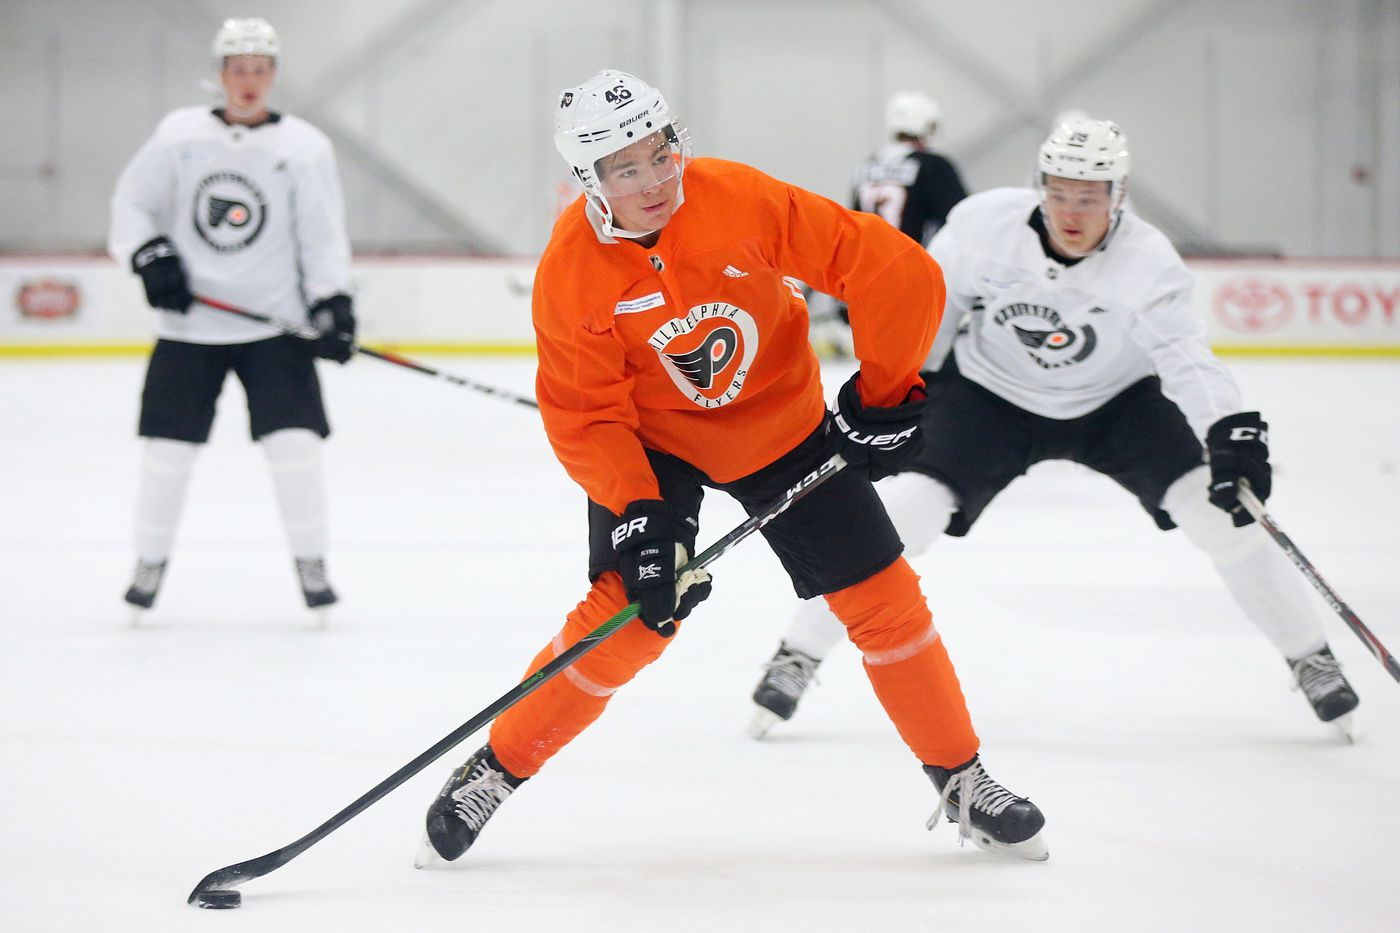 Flyers' draft pick Bobby Brink shows promise at development camp